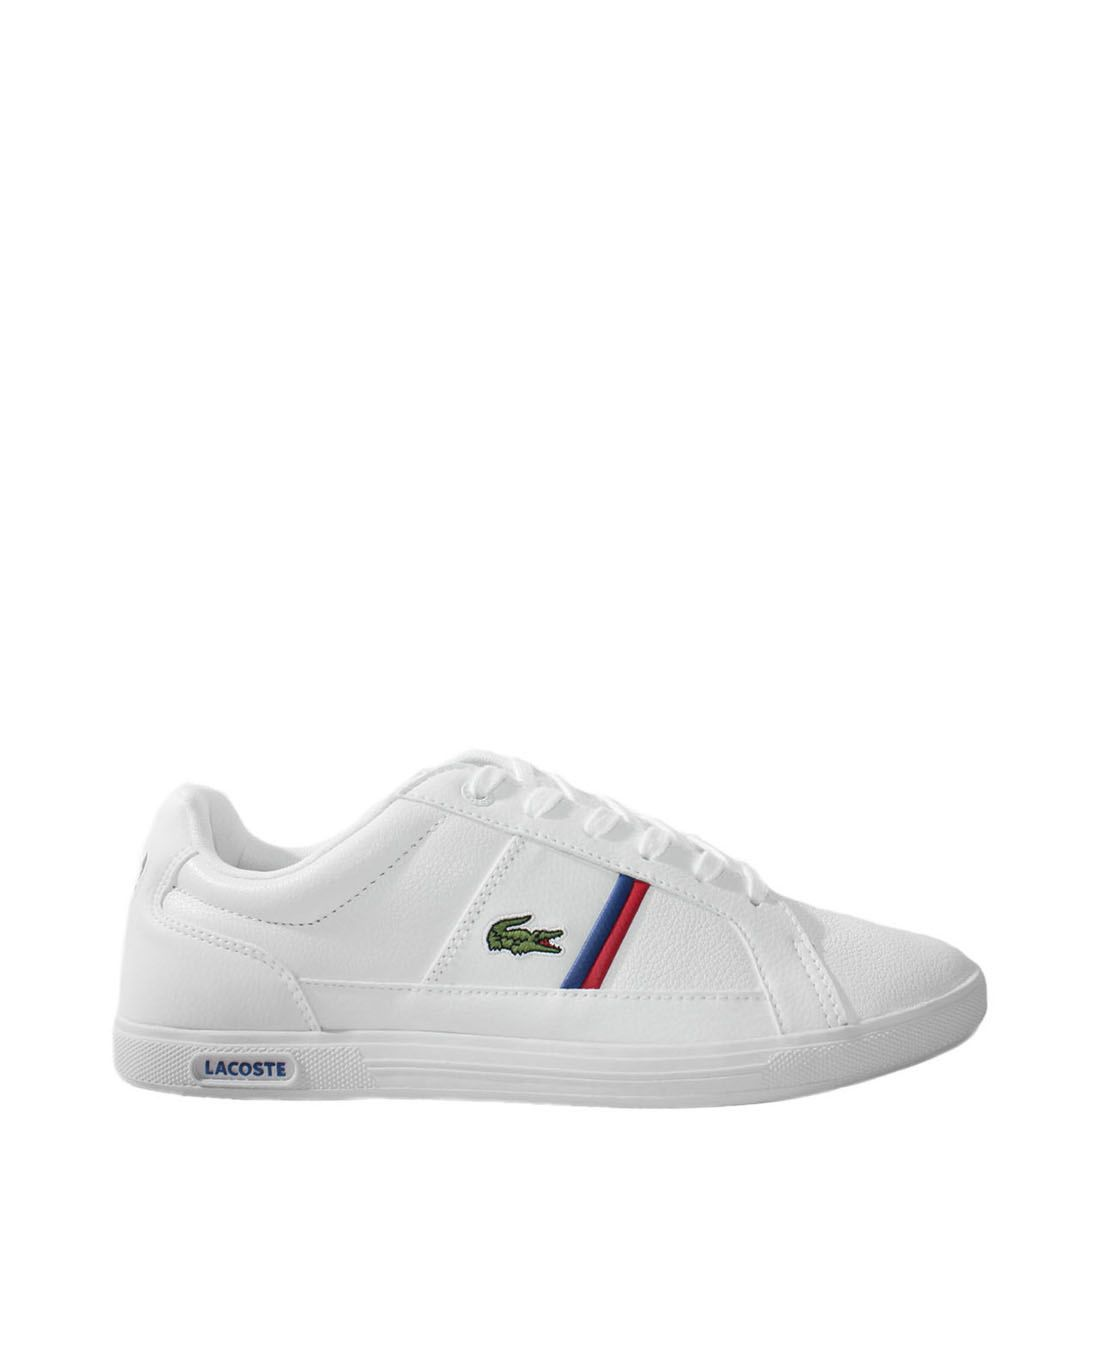 2550cd5f Zapatillas LACOSTE blanco EUROPA | Shoes in time | Zapatillas ...